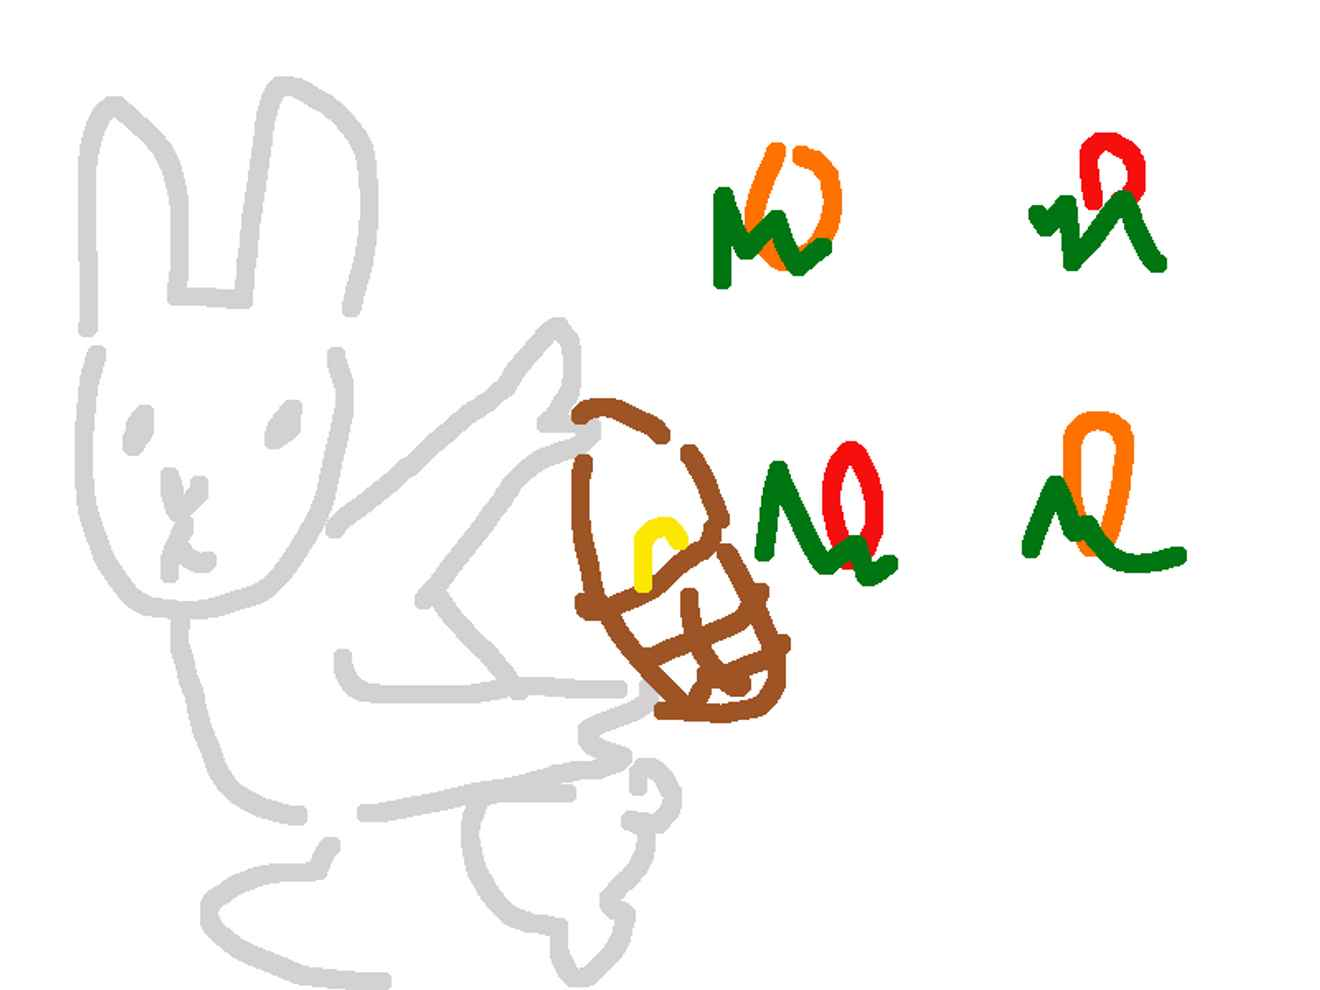 crude drawing of an easter bunny